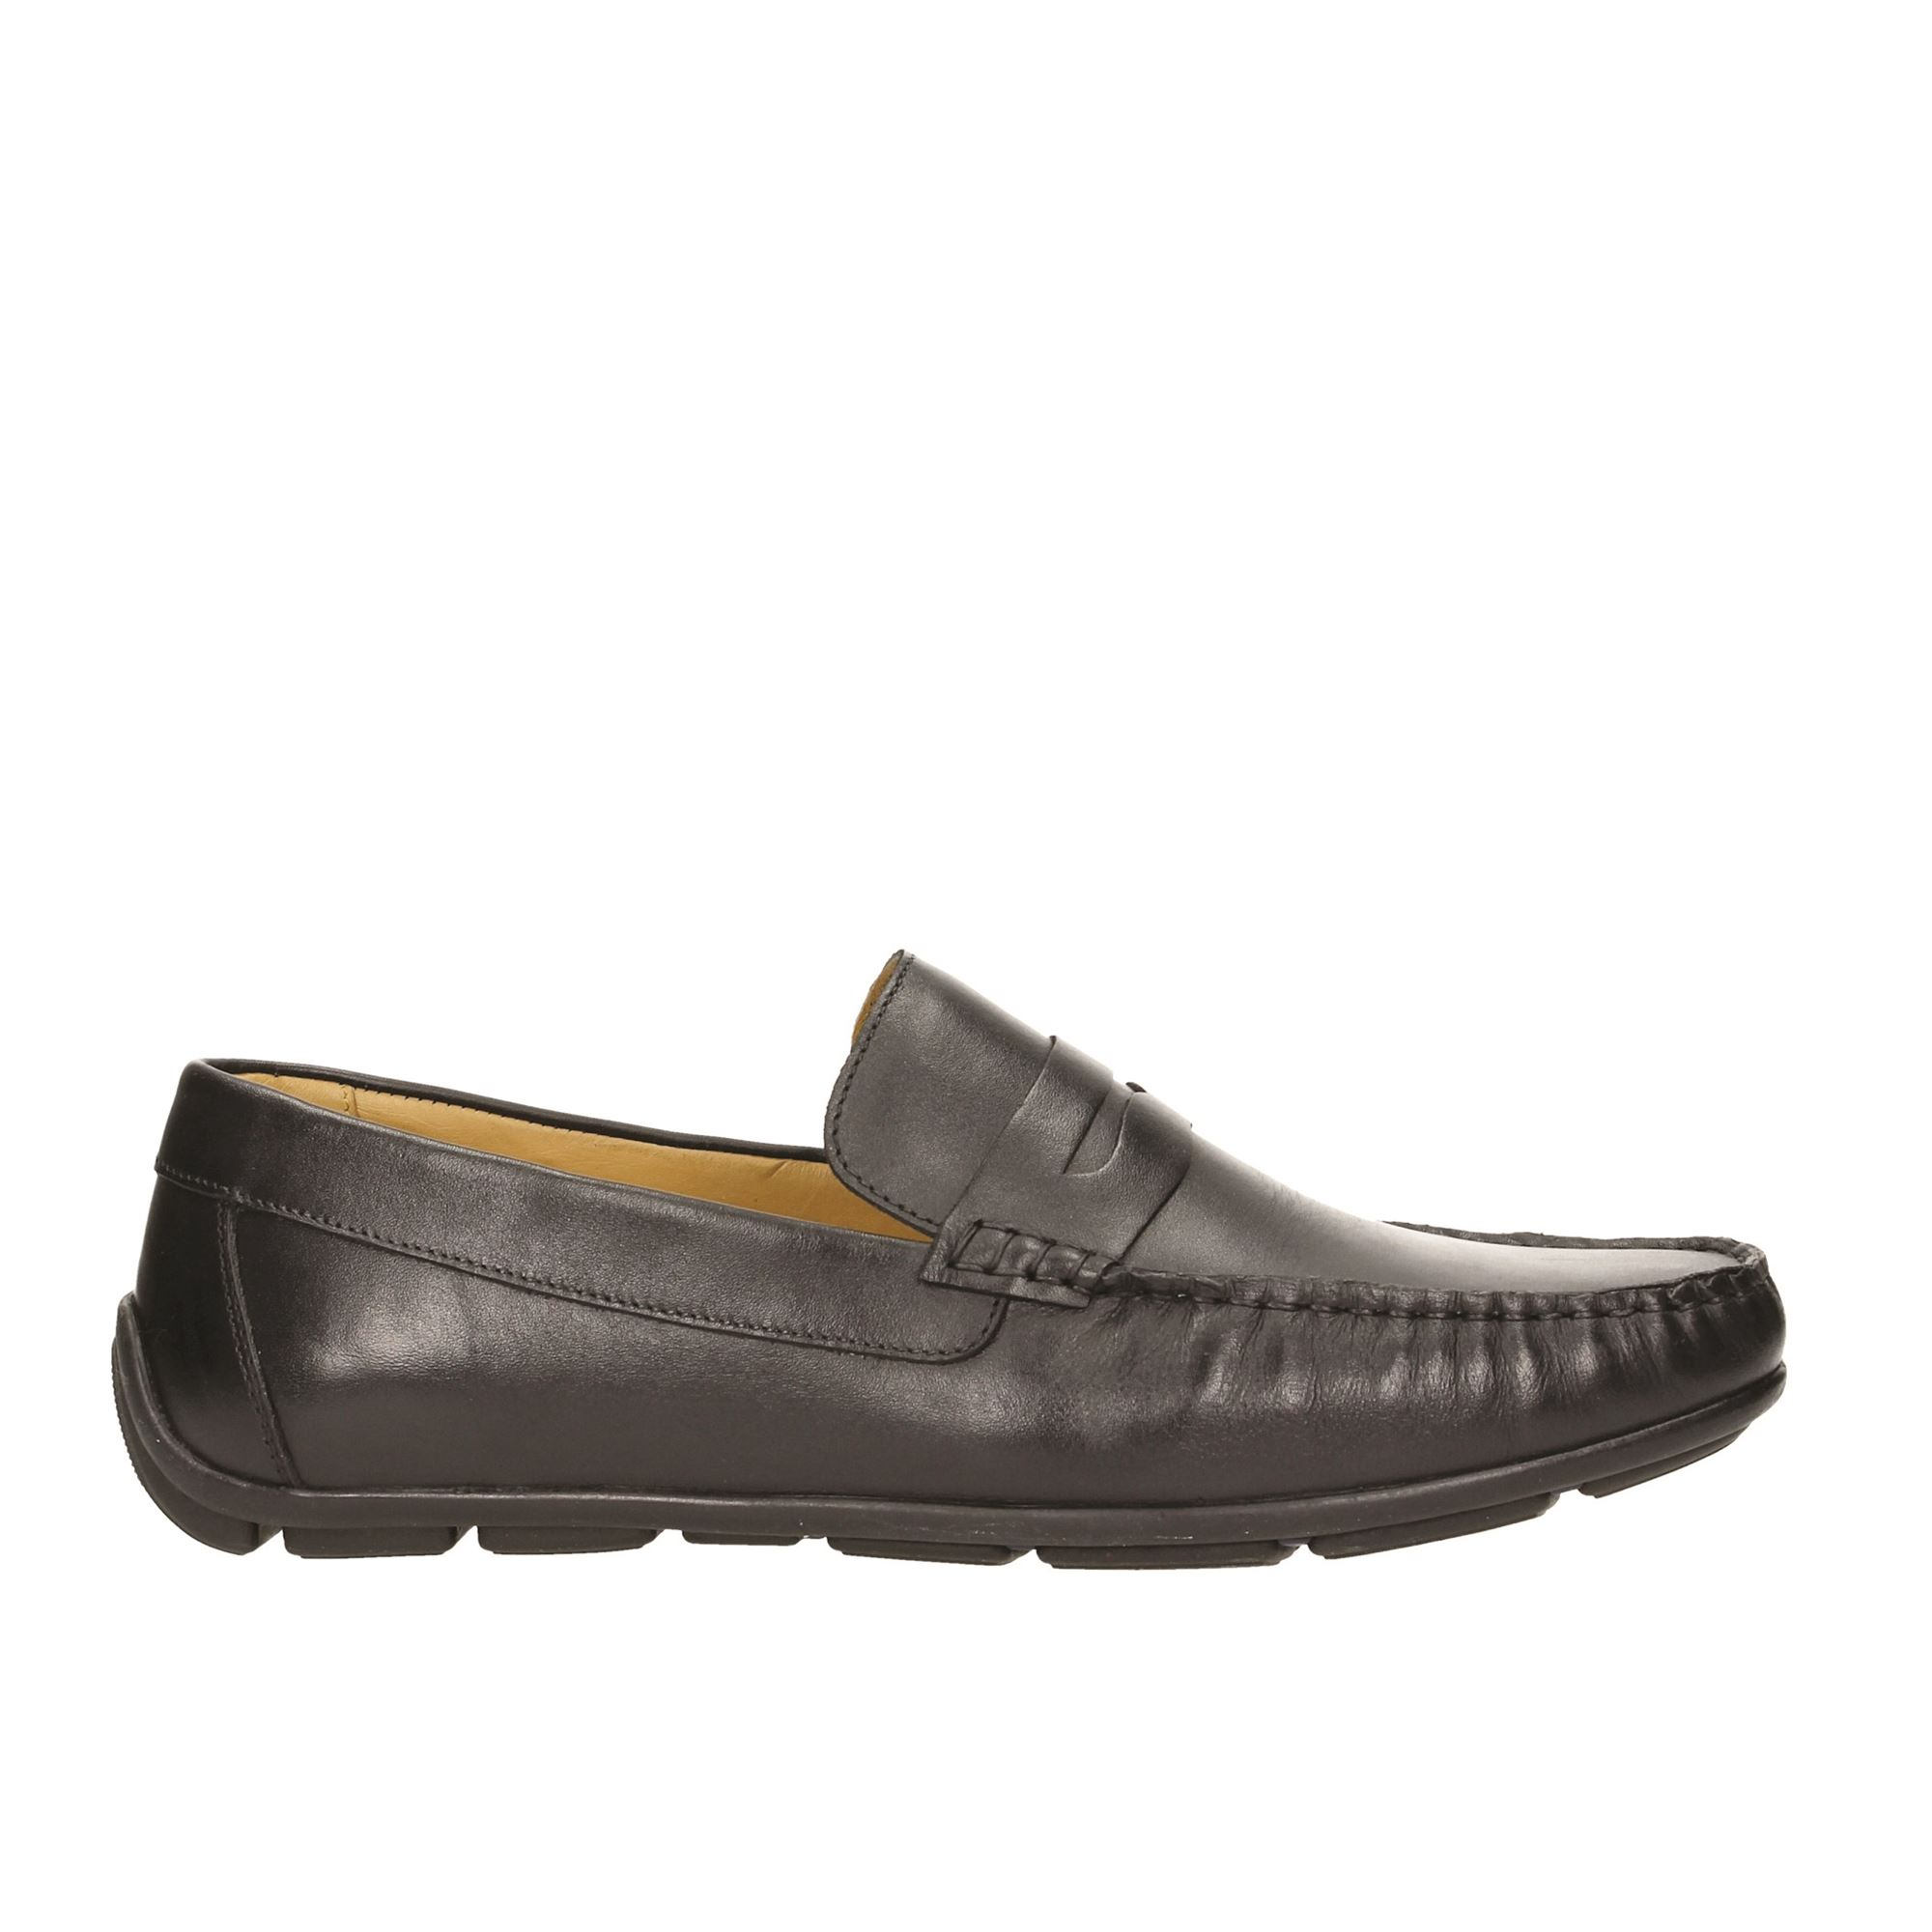 Tata Italia Shoes Man Mocassini Black 2-004-04